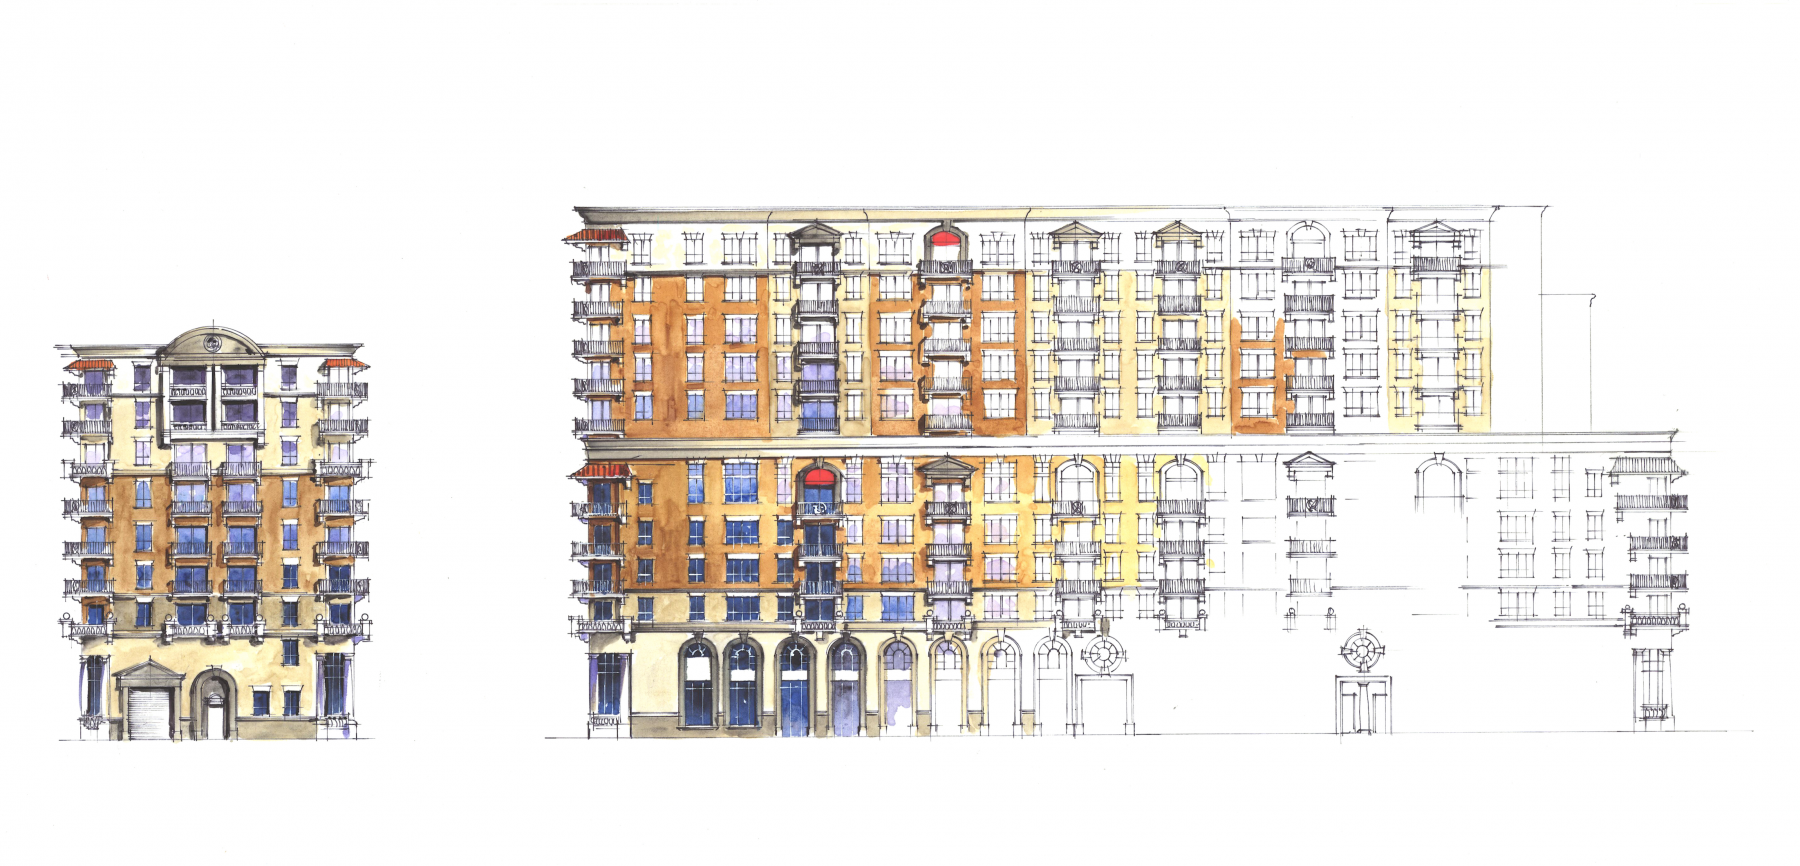 8a - 2nd Building Elevation Study-ies